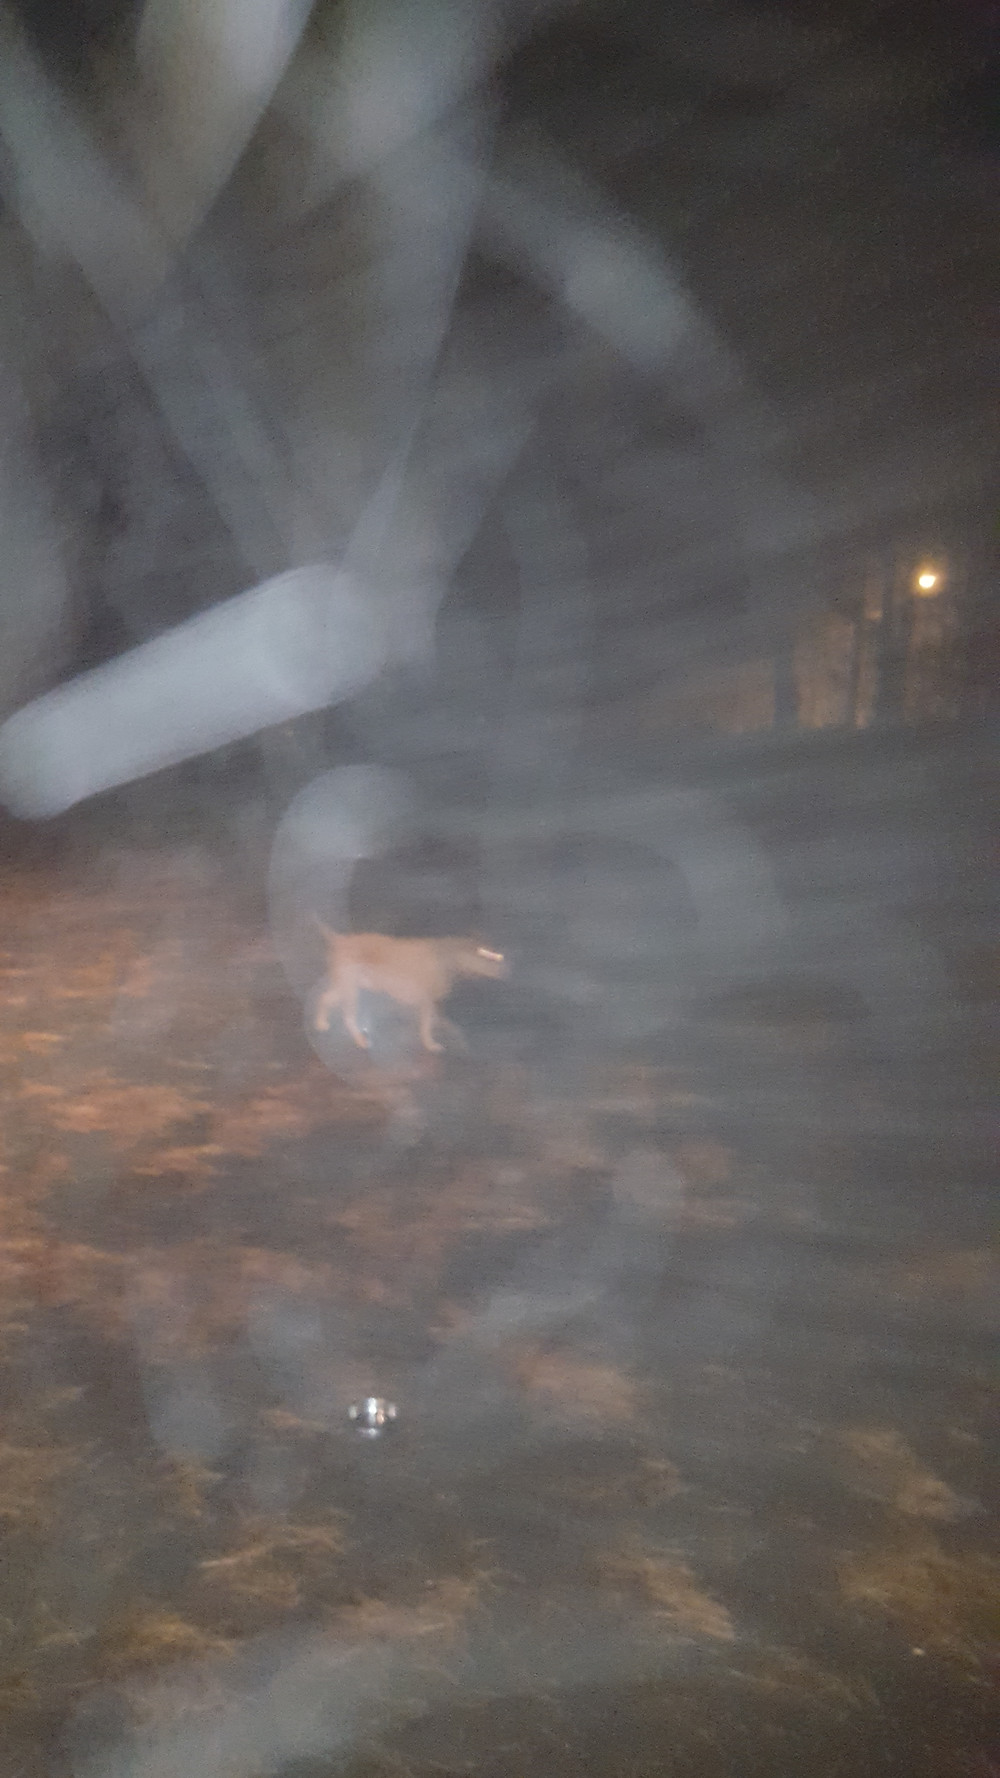 Orange -colored dog walking on a driveway in the night surrounded by white